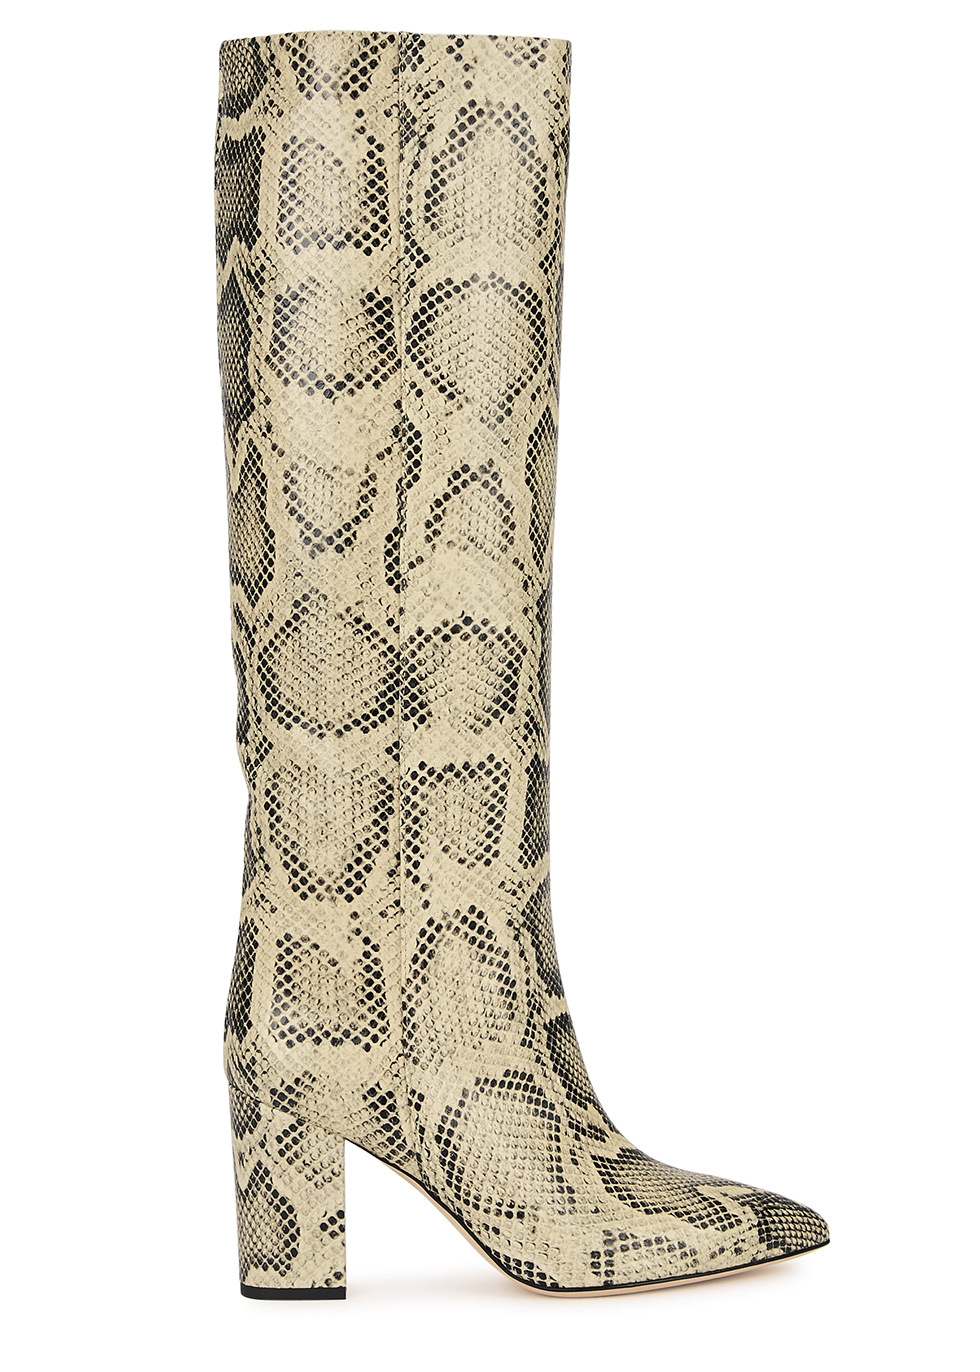 85 python-effect leather knee-high boots